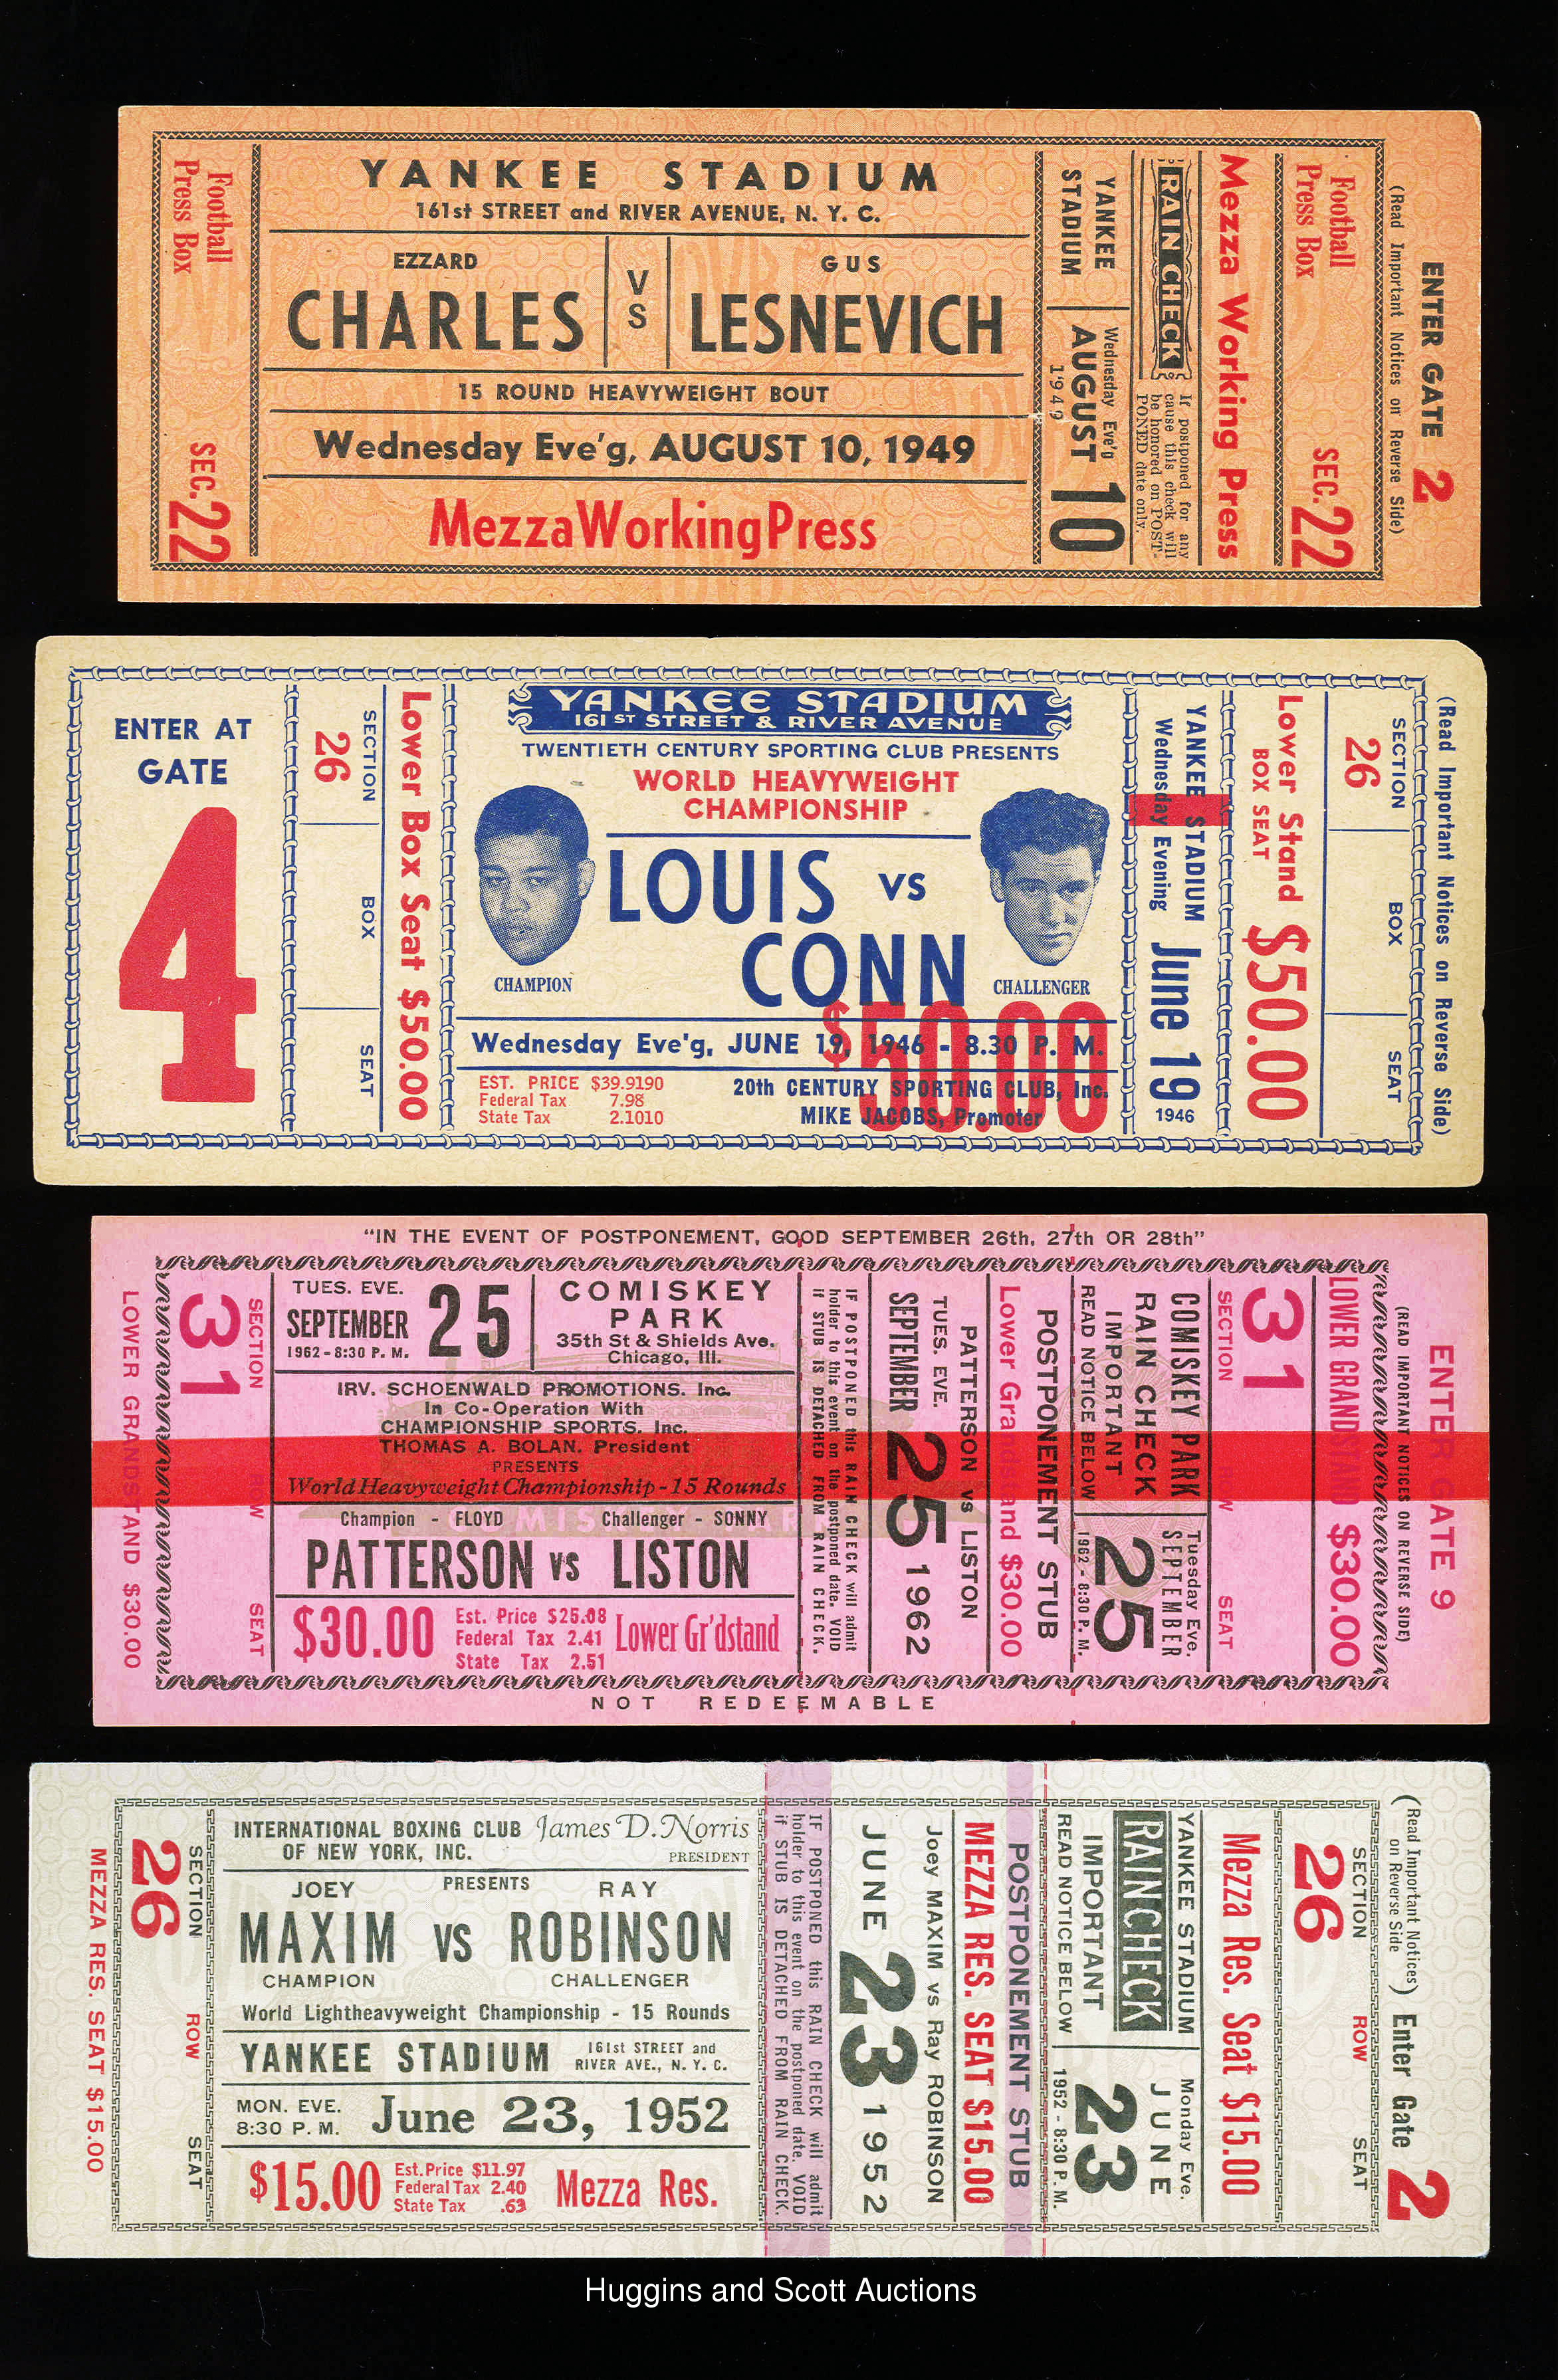 Old Boxing Tickets Wiring Diagrams Light Laser Led Gt Xenon Circuits Simple Strobe Circuit L12379 4 Full With Louis Conn Rh Mar07 Hugginsandscott Com Luis And Shmeling Ticket 1920